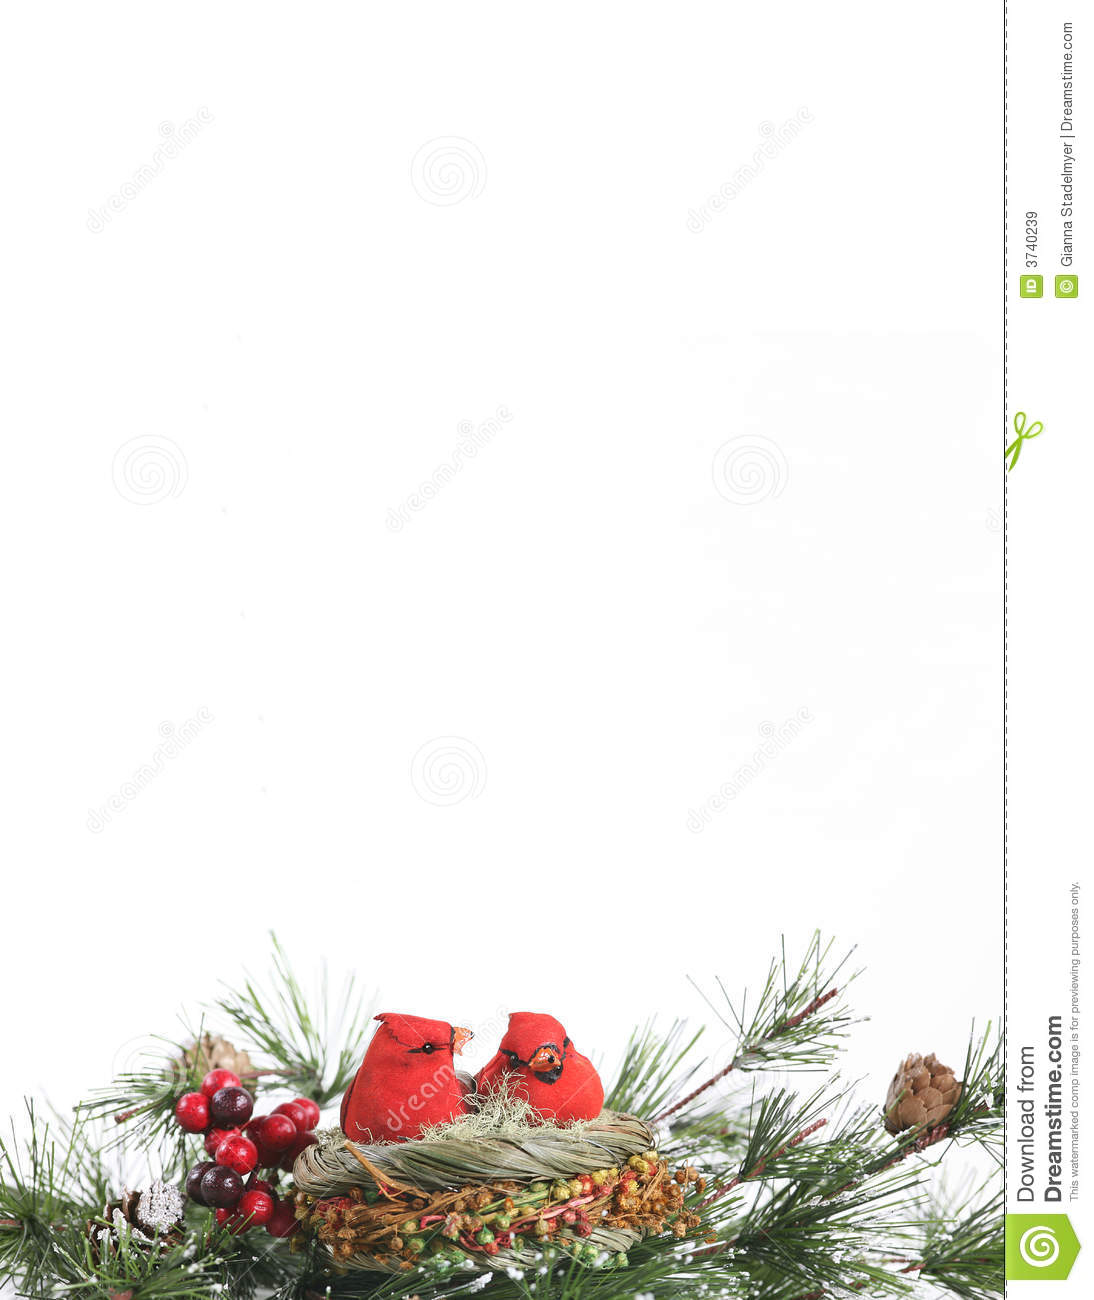 winter cardinals in evergreen stationary stock image image of